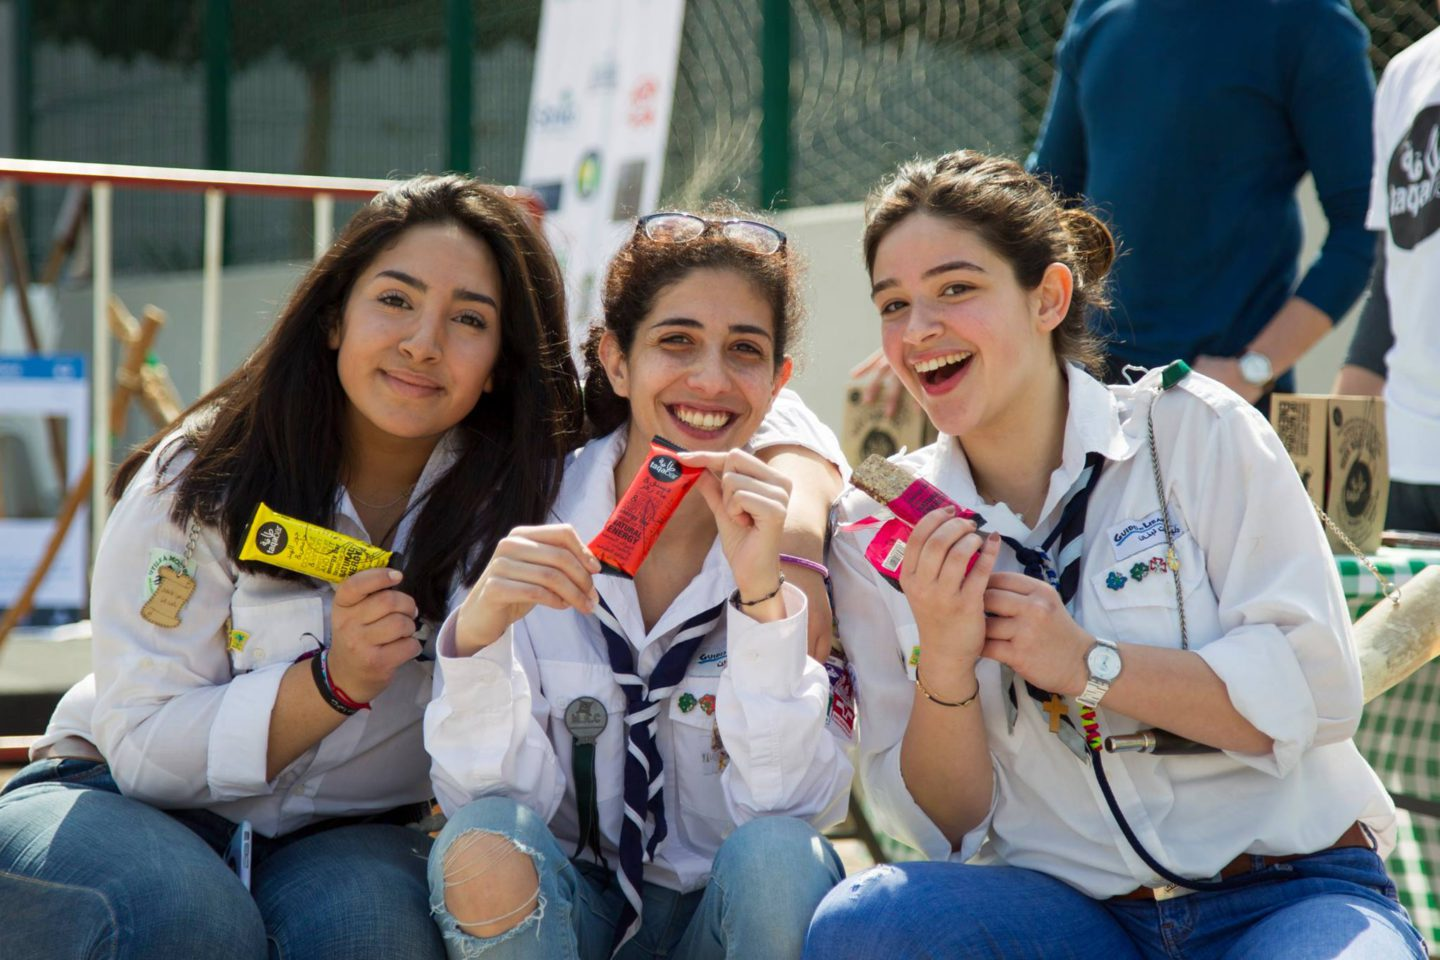 A Lebanese initiative is stirring up competition in the healthy food market | The Switchers